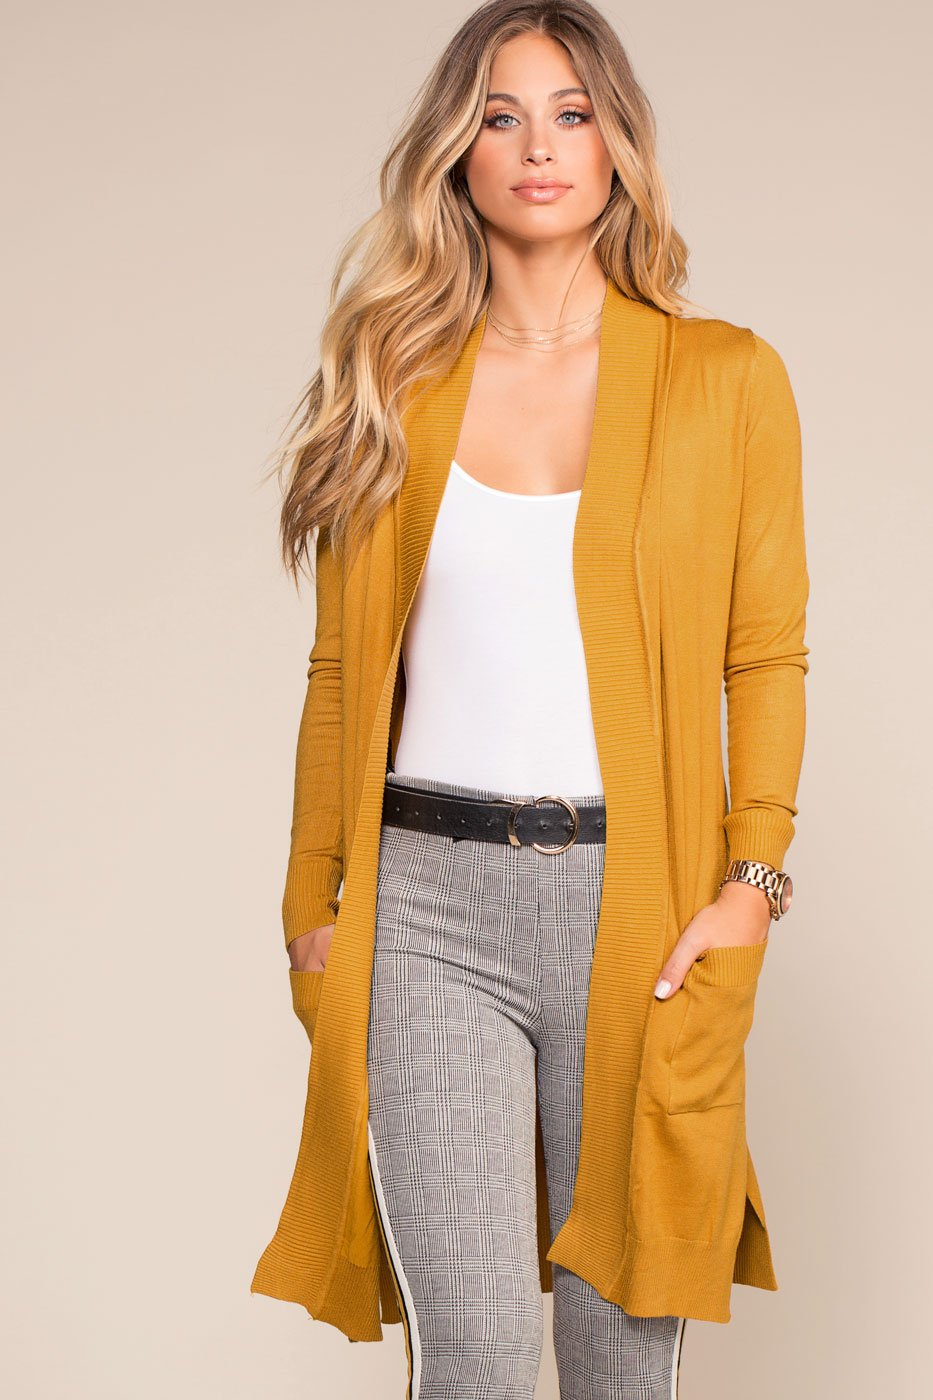 Cardigans - Kokette Long Cardigan Sweater - Mustard